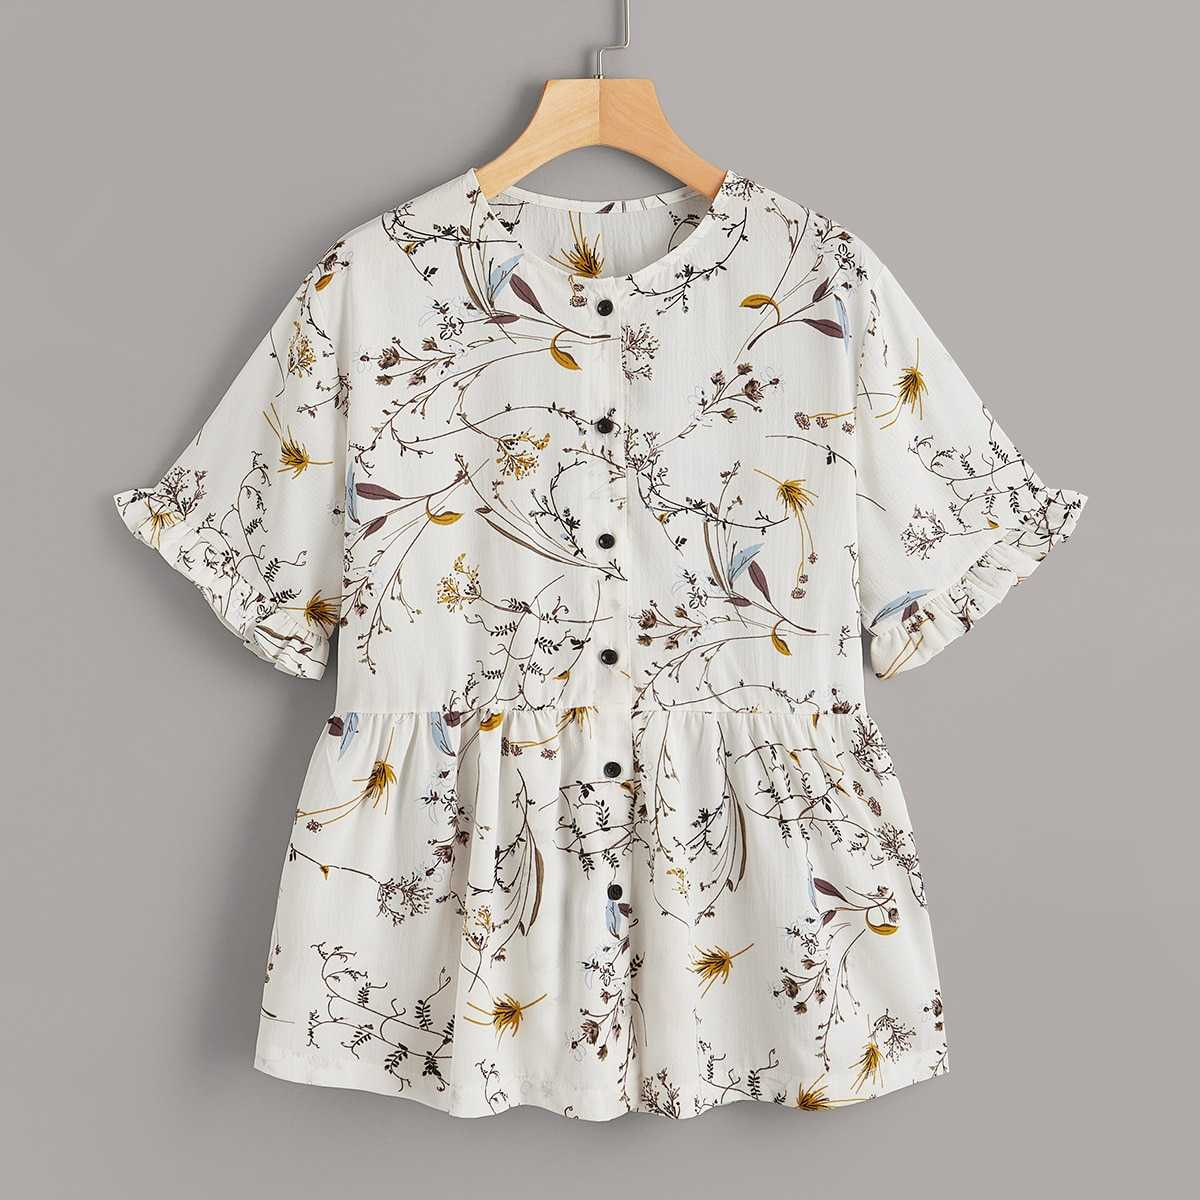 Ditsy floral Button Front Blouse in Multicolor by ROMWE on GOOFASH